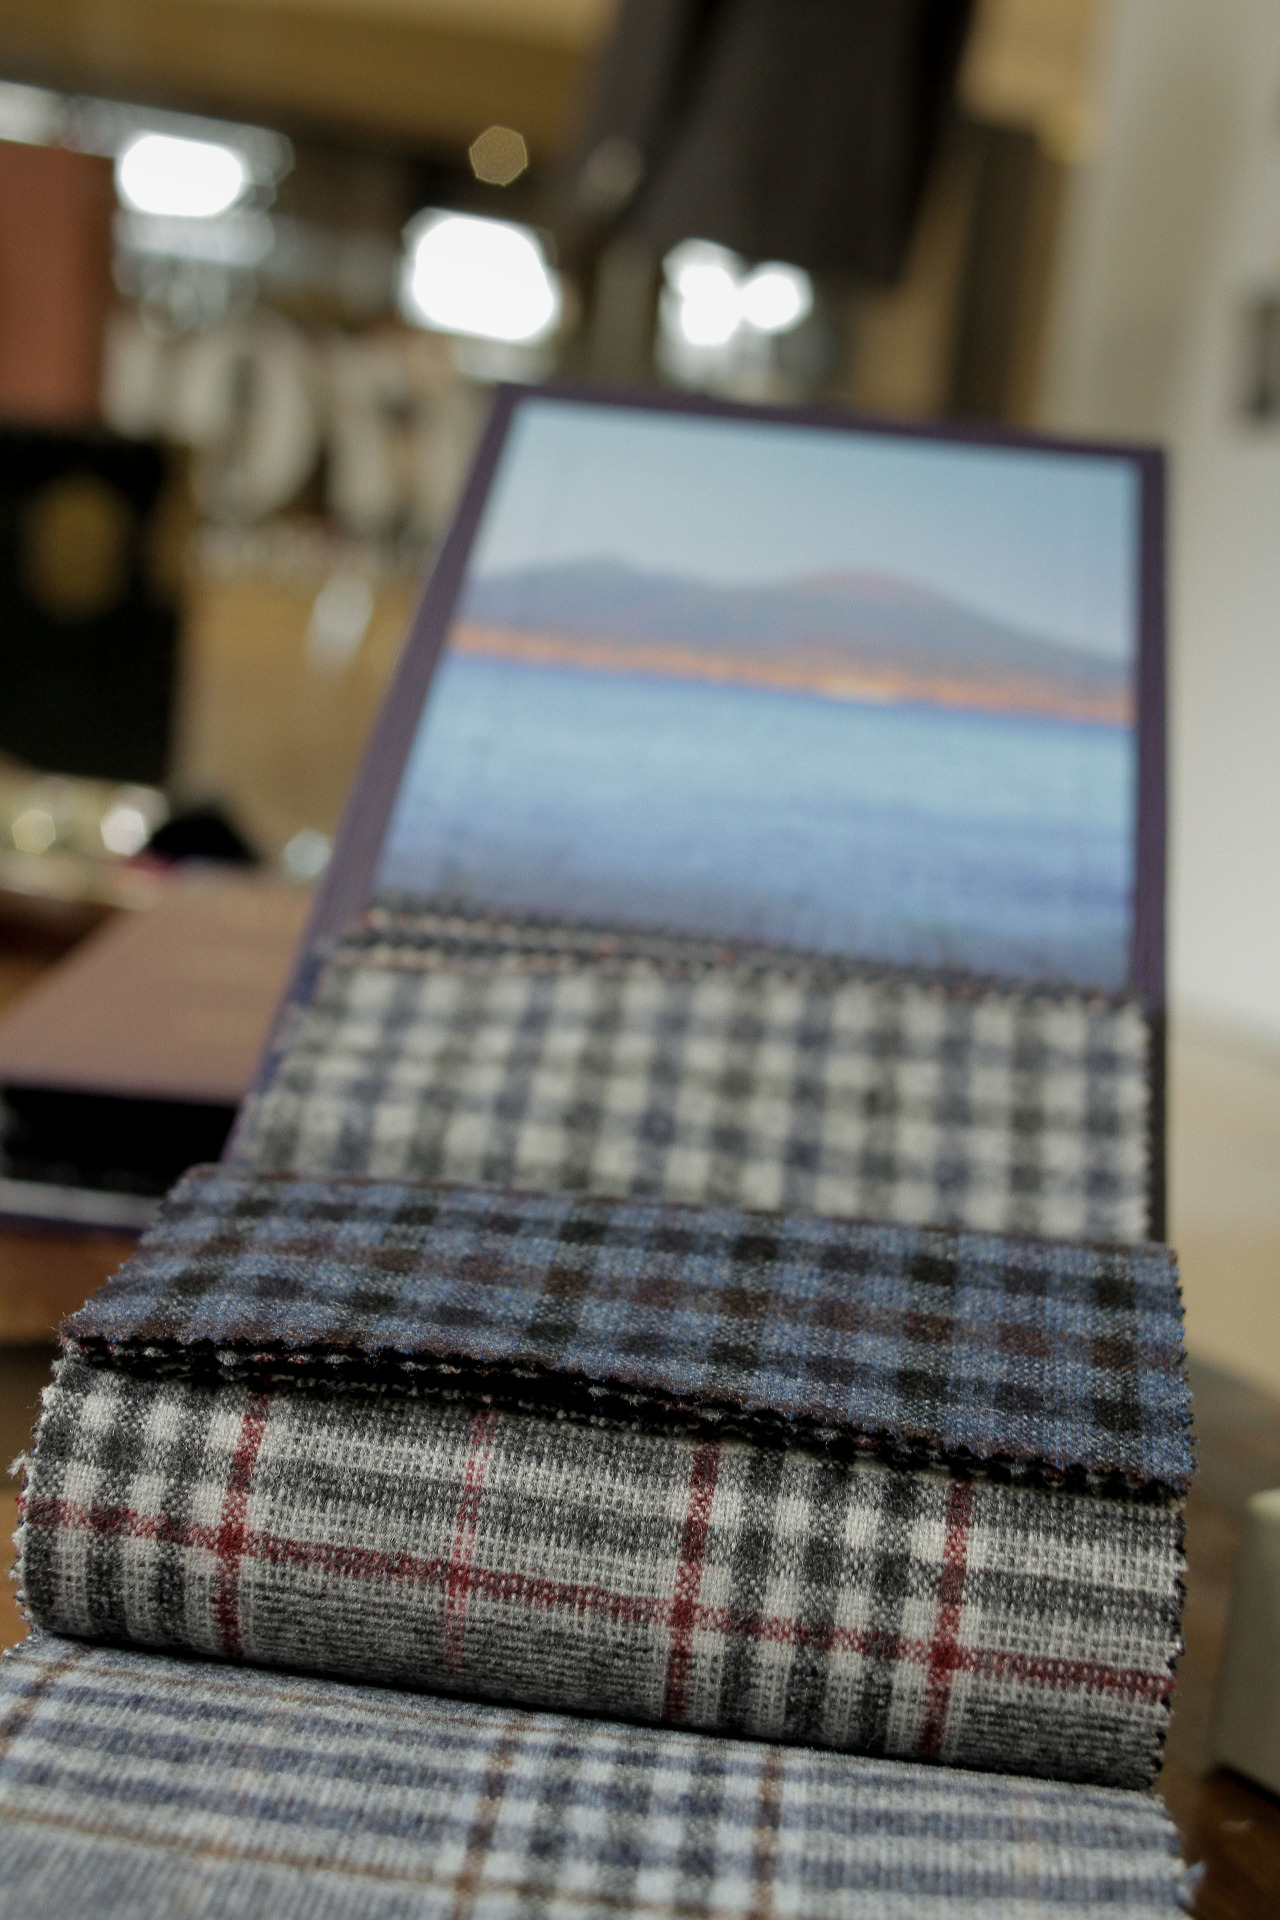 F/W Fabrics from Ariston of Napoli